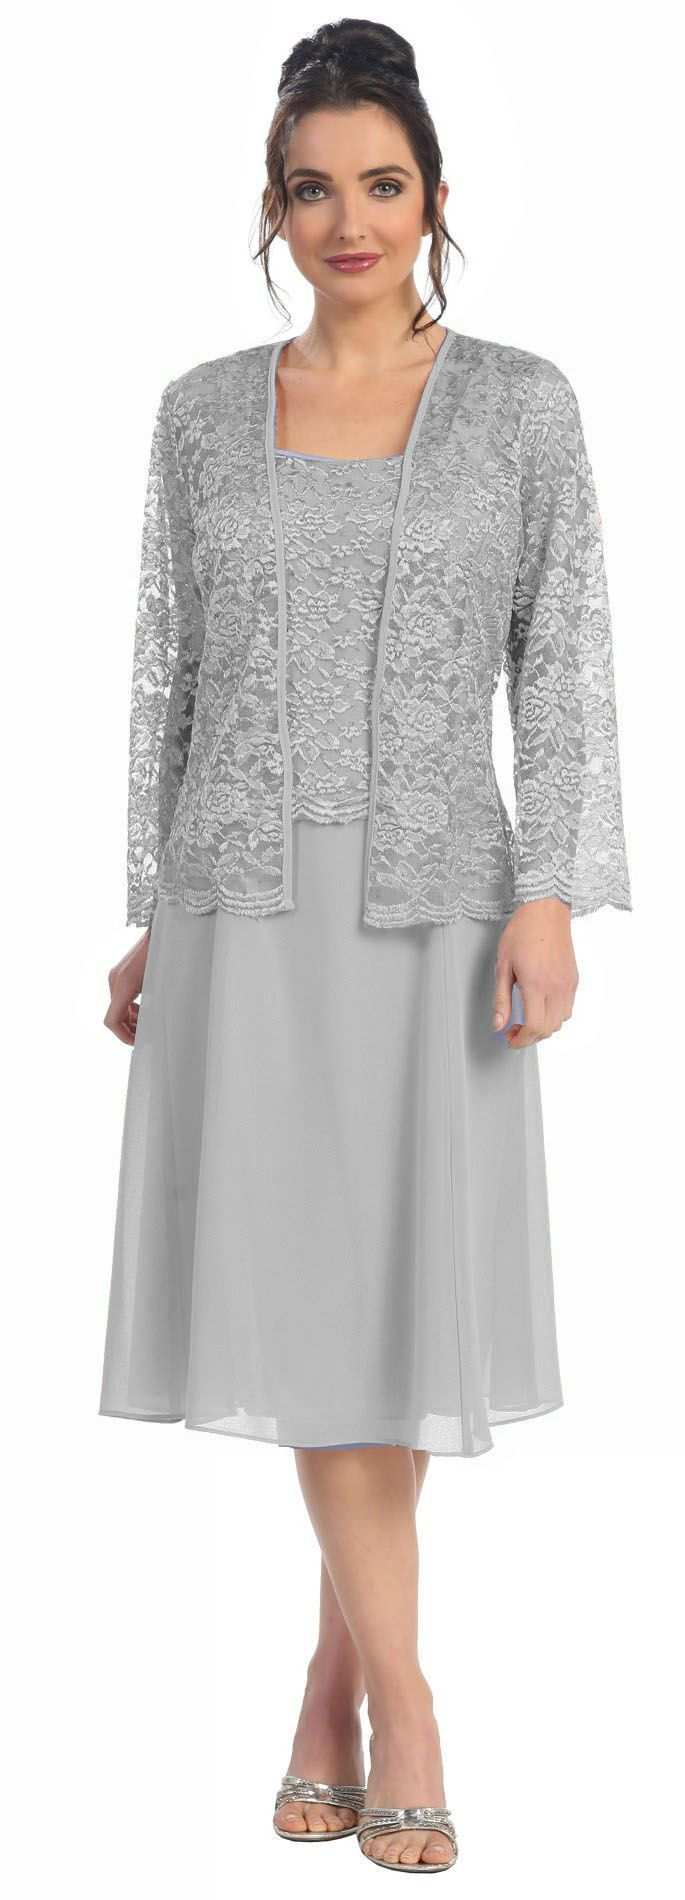 grandmother of the bride dresses evening wedding outfit With grandmother dress for wedding